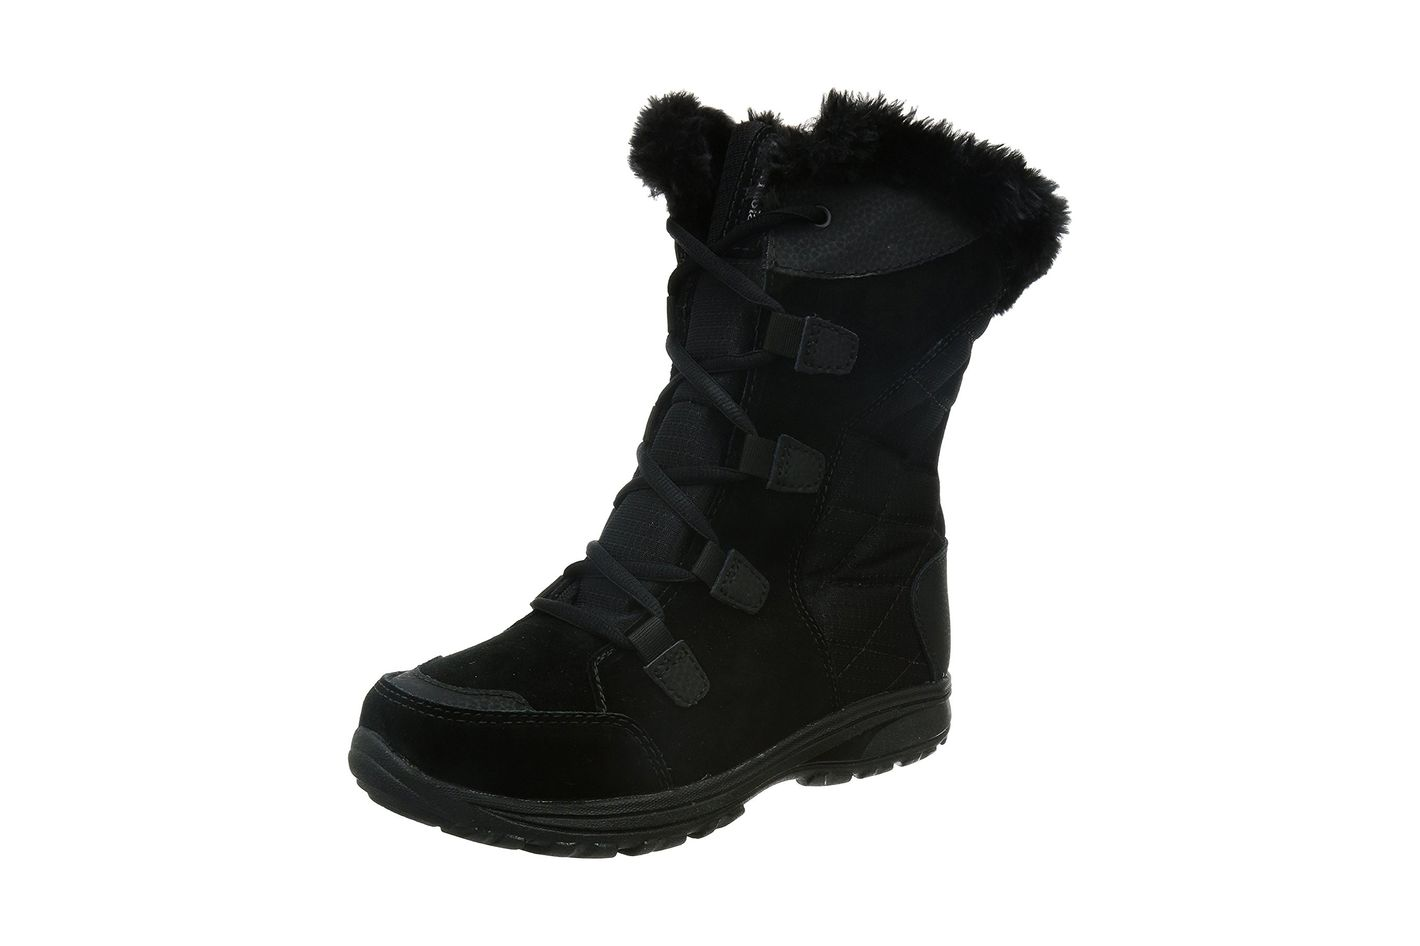 Columbia Women s Ice Maiden II Snow Boot f59793c4e